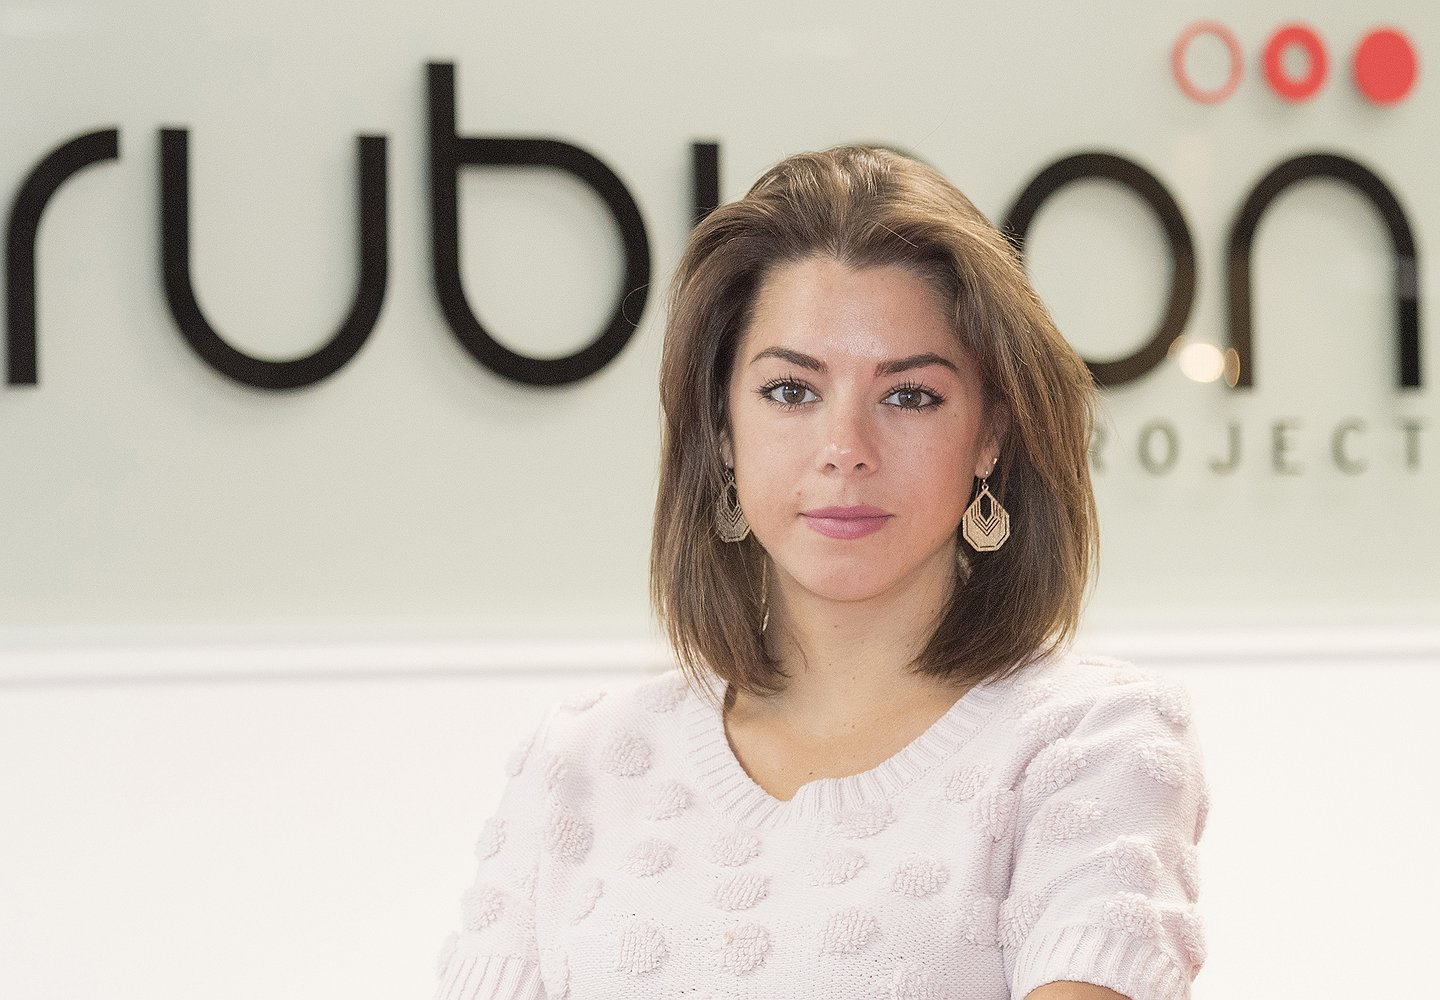 Rubicon Project Helps Raise the Curtain on Audio Programmatic